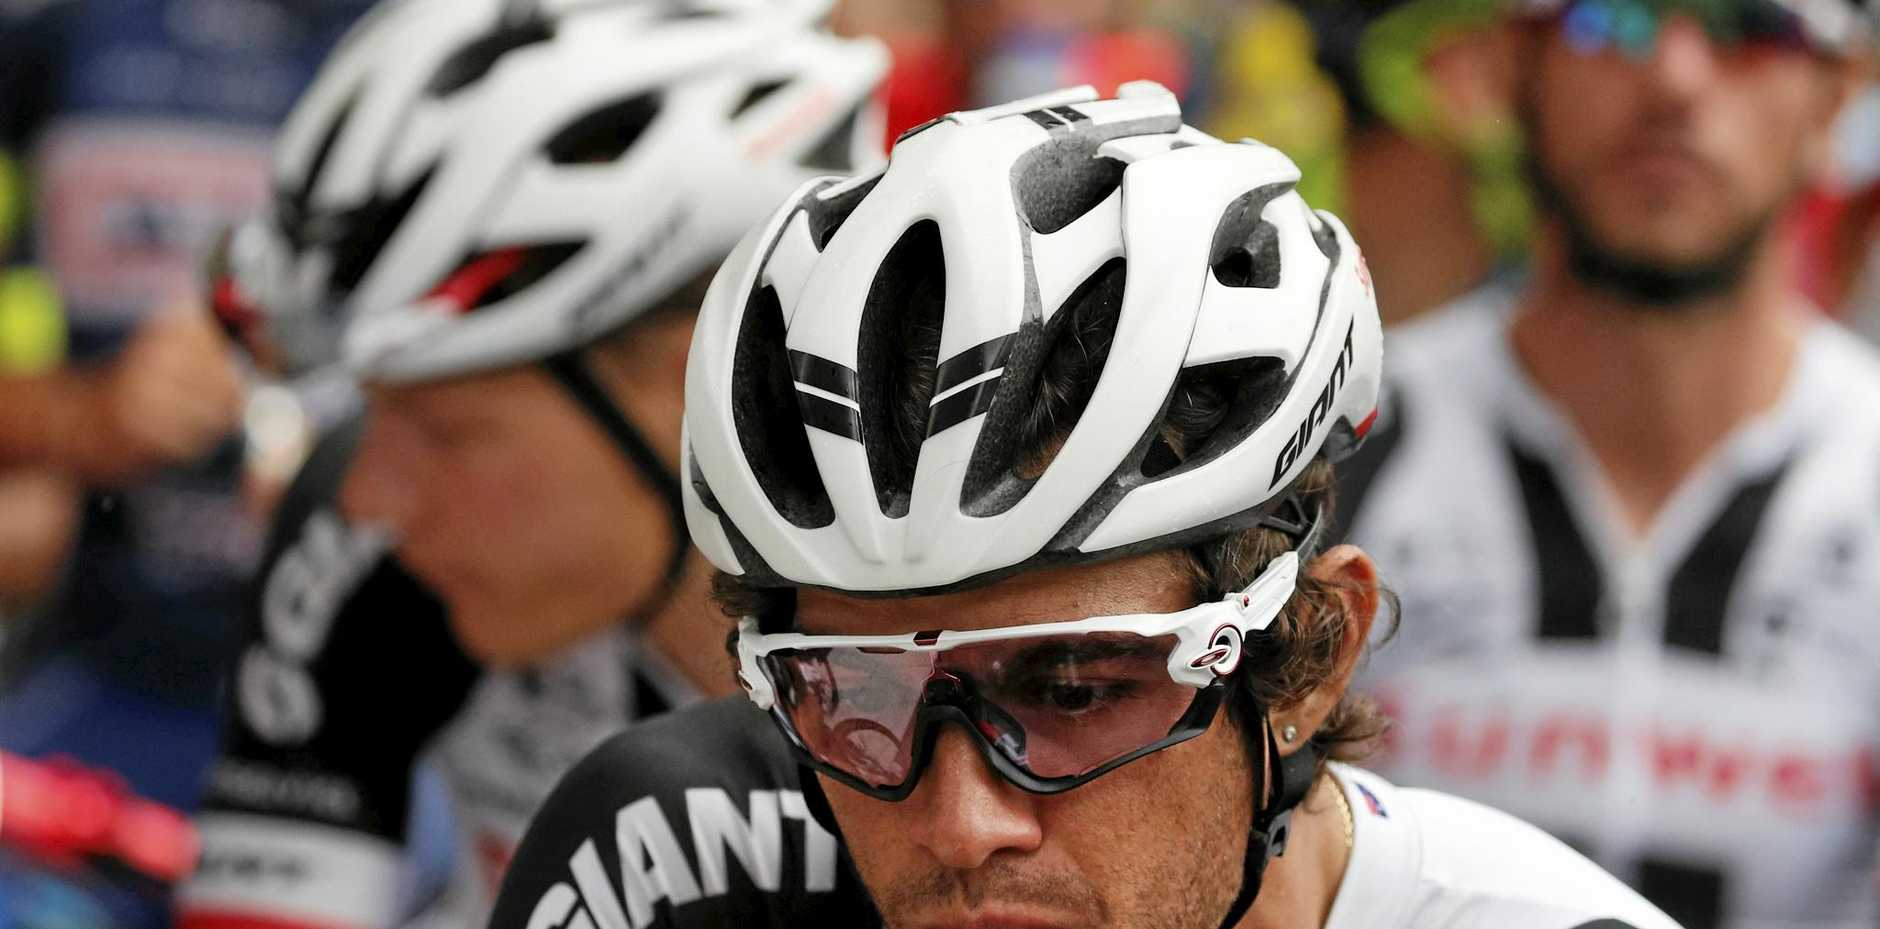 Australia's Michael Matthews waits to take the start of the ninth stage of the Tour de France